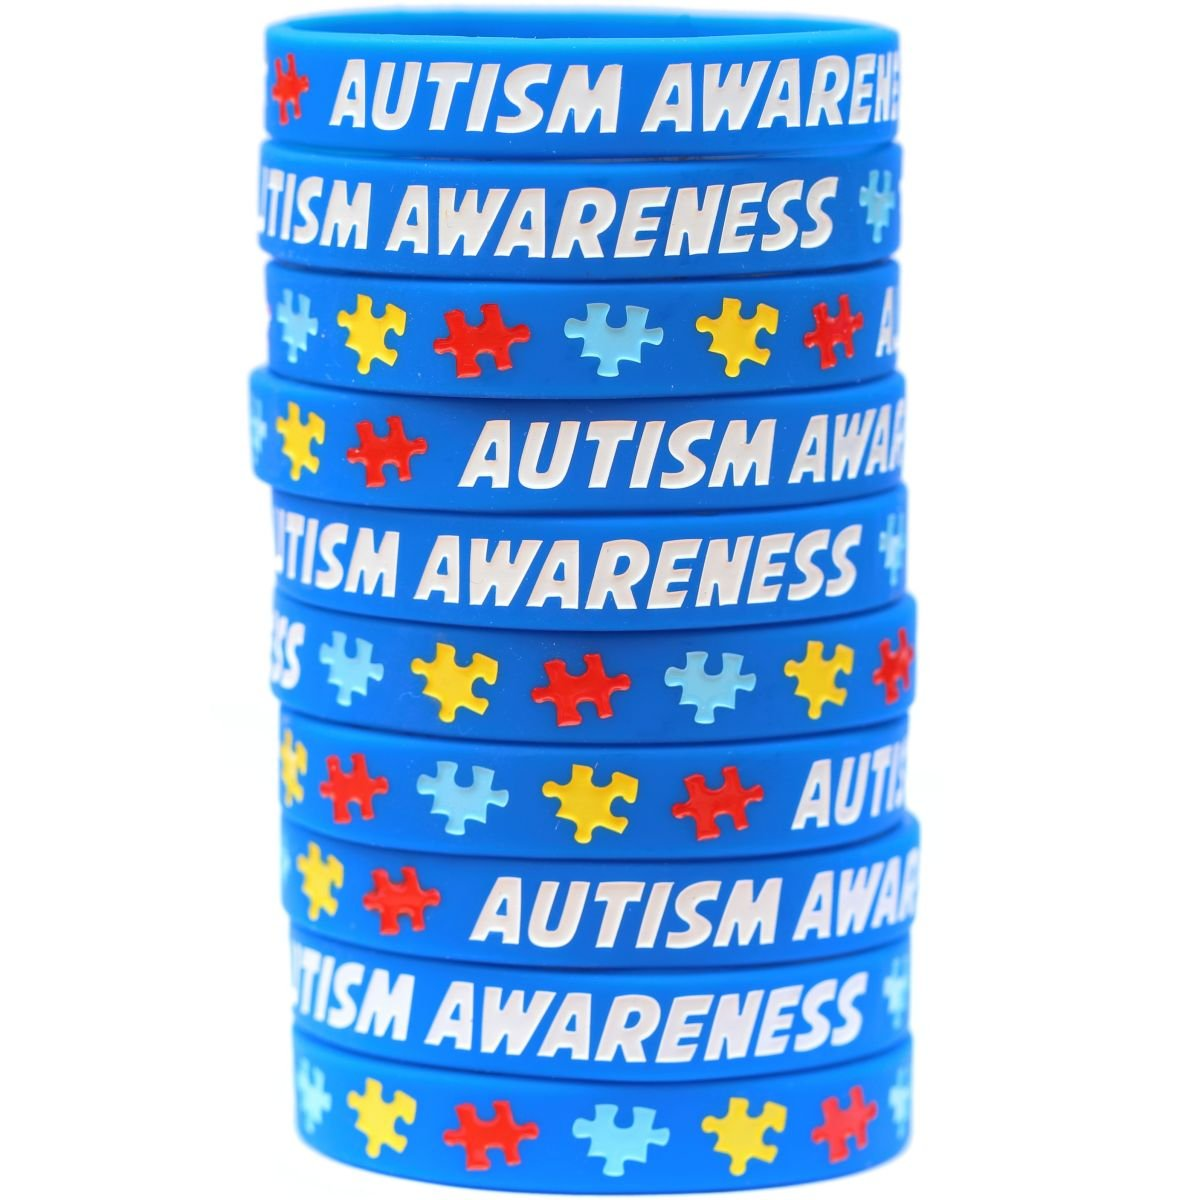 daughter sister or nephew son autism brother niece grandson granddaughter bracelet awareness products